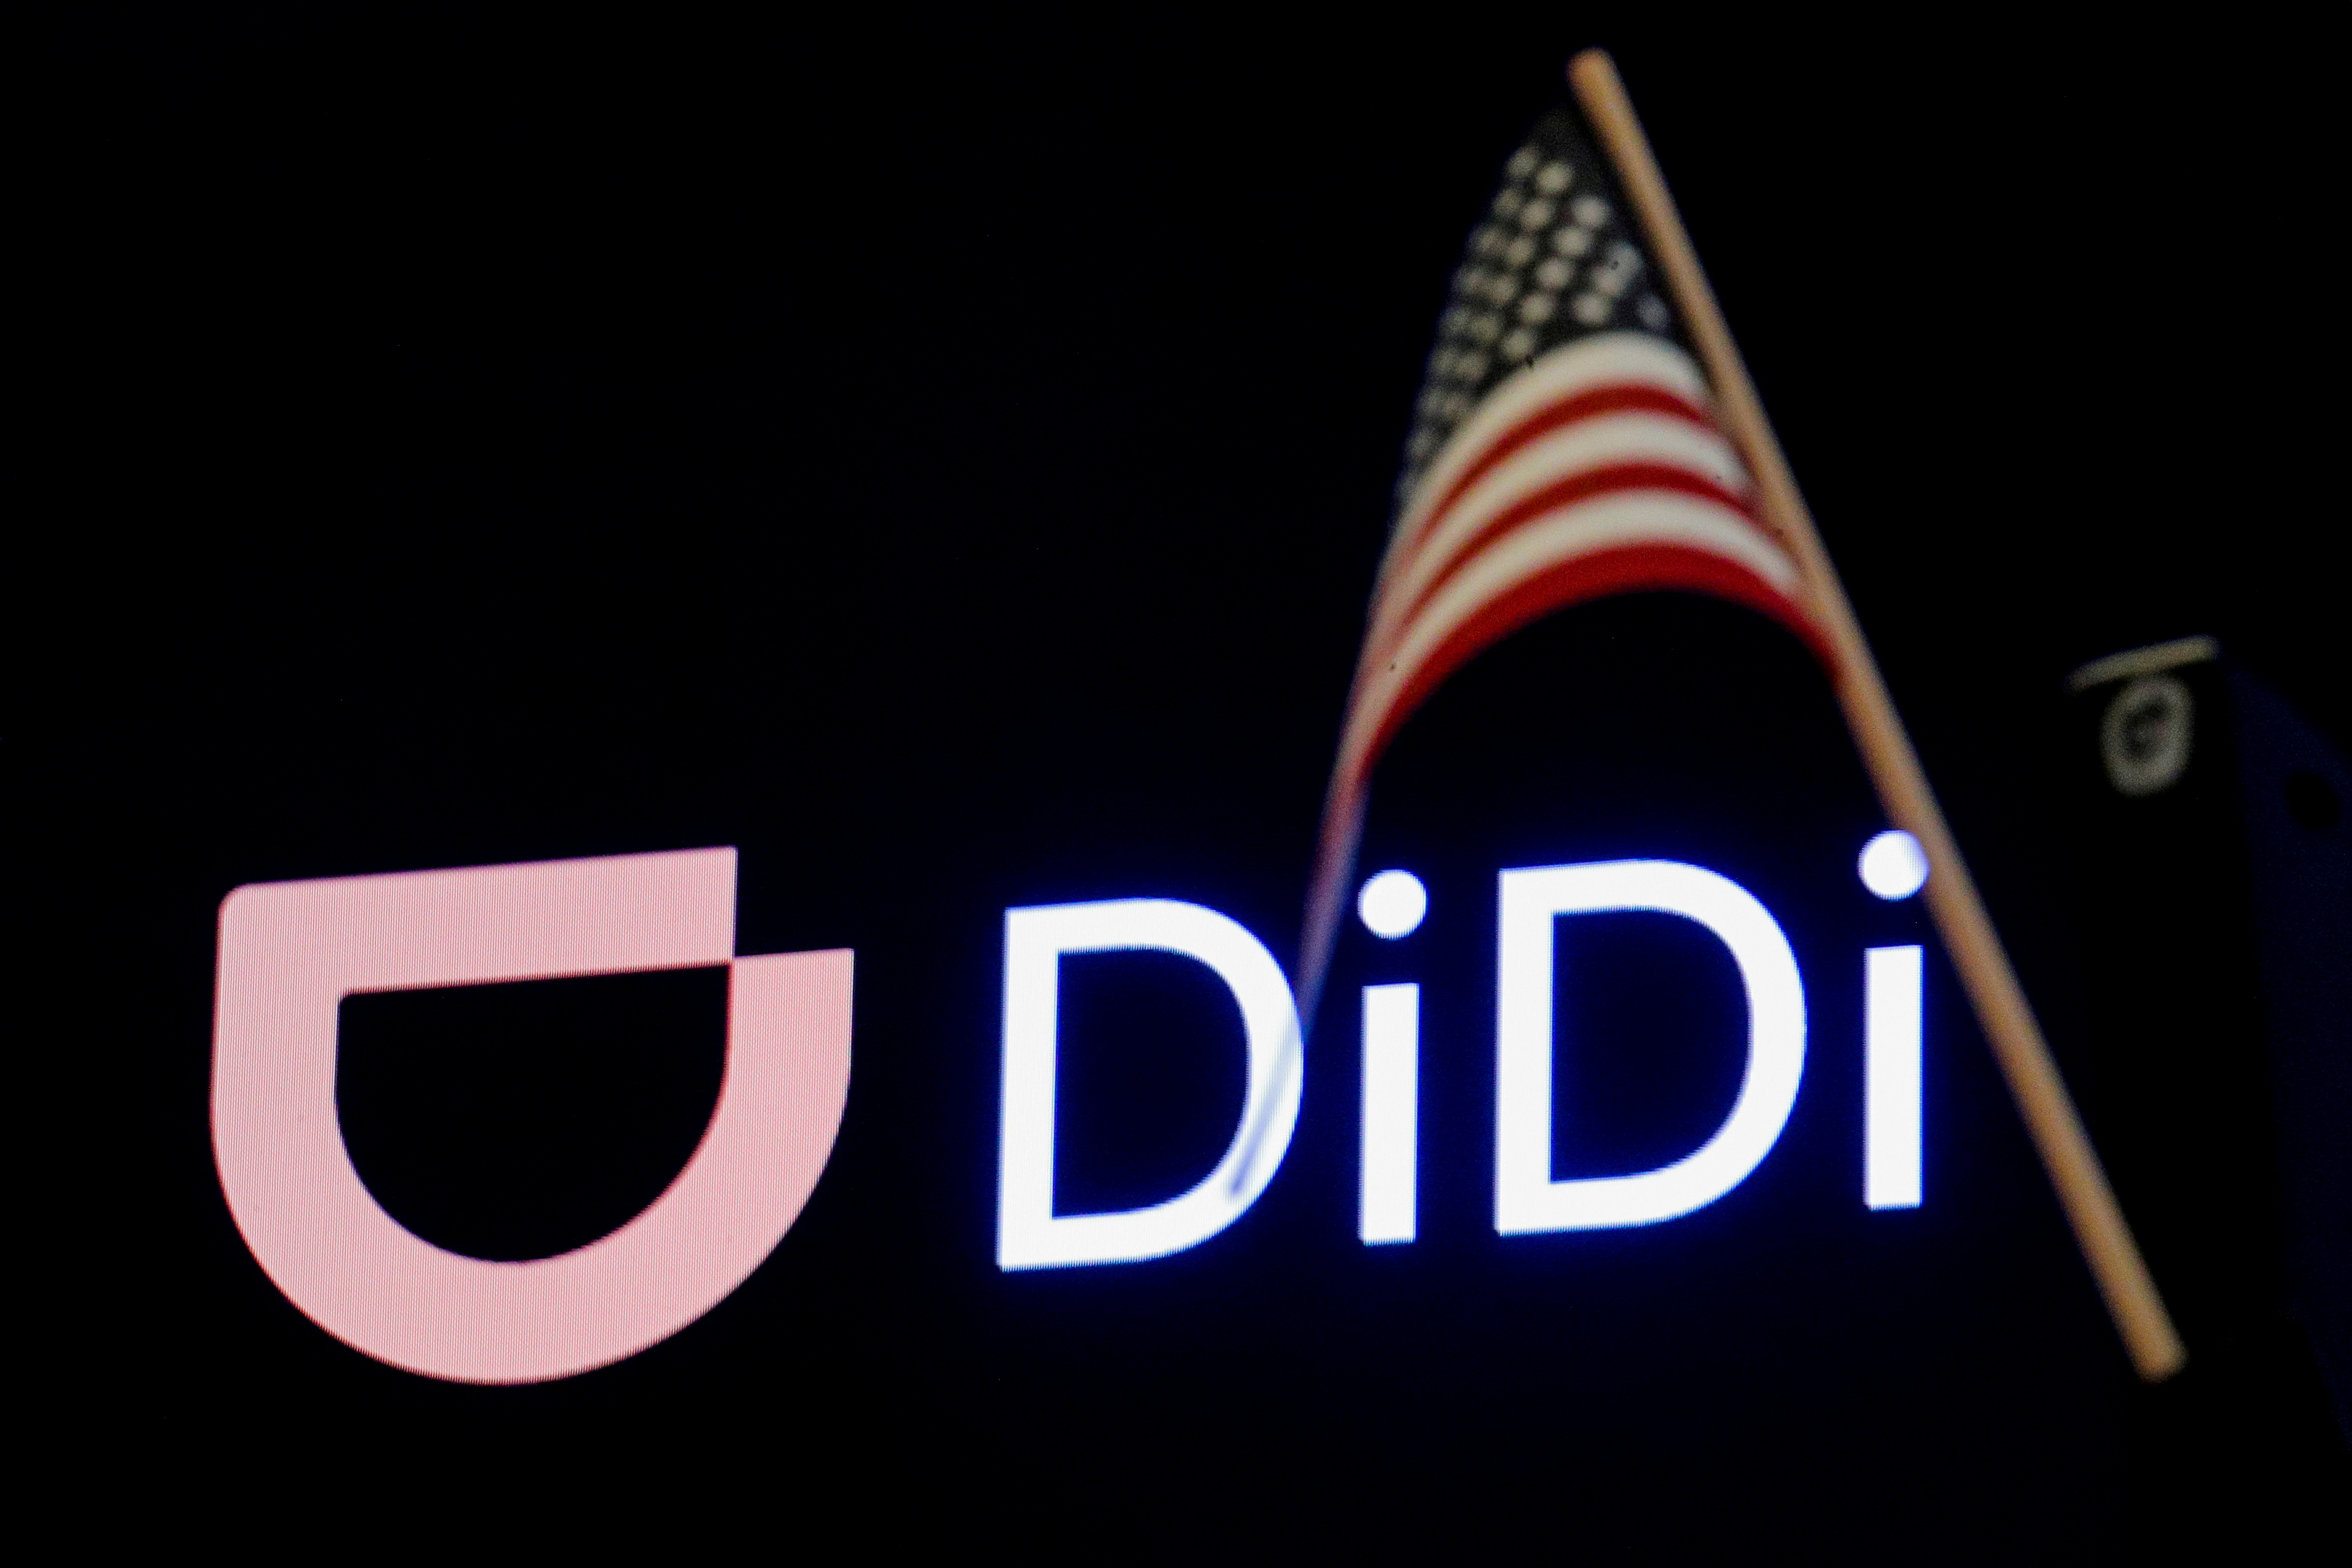 An American flag is seen in front of the logo for Chinese ride hailing company Didi Global Inc. during the IPO on the New York Stock Exchange (NYSE) floor in New York City, U.S., June 30, 2021.  REUTERS/Brendan McDermid/File Photo